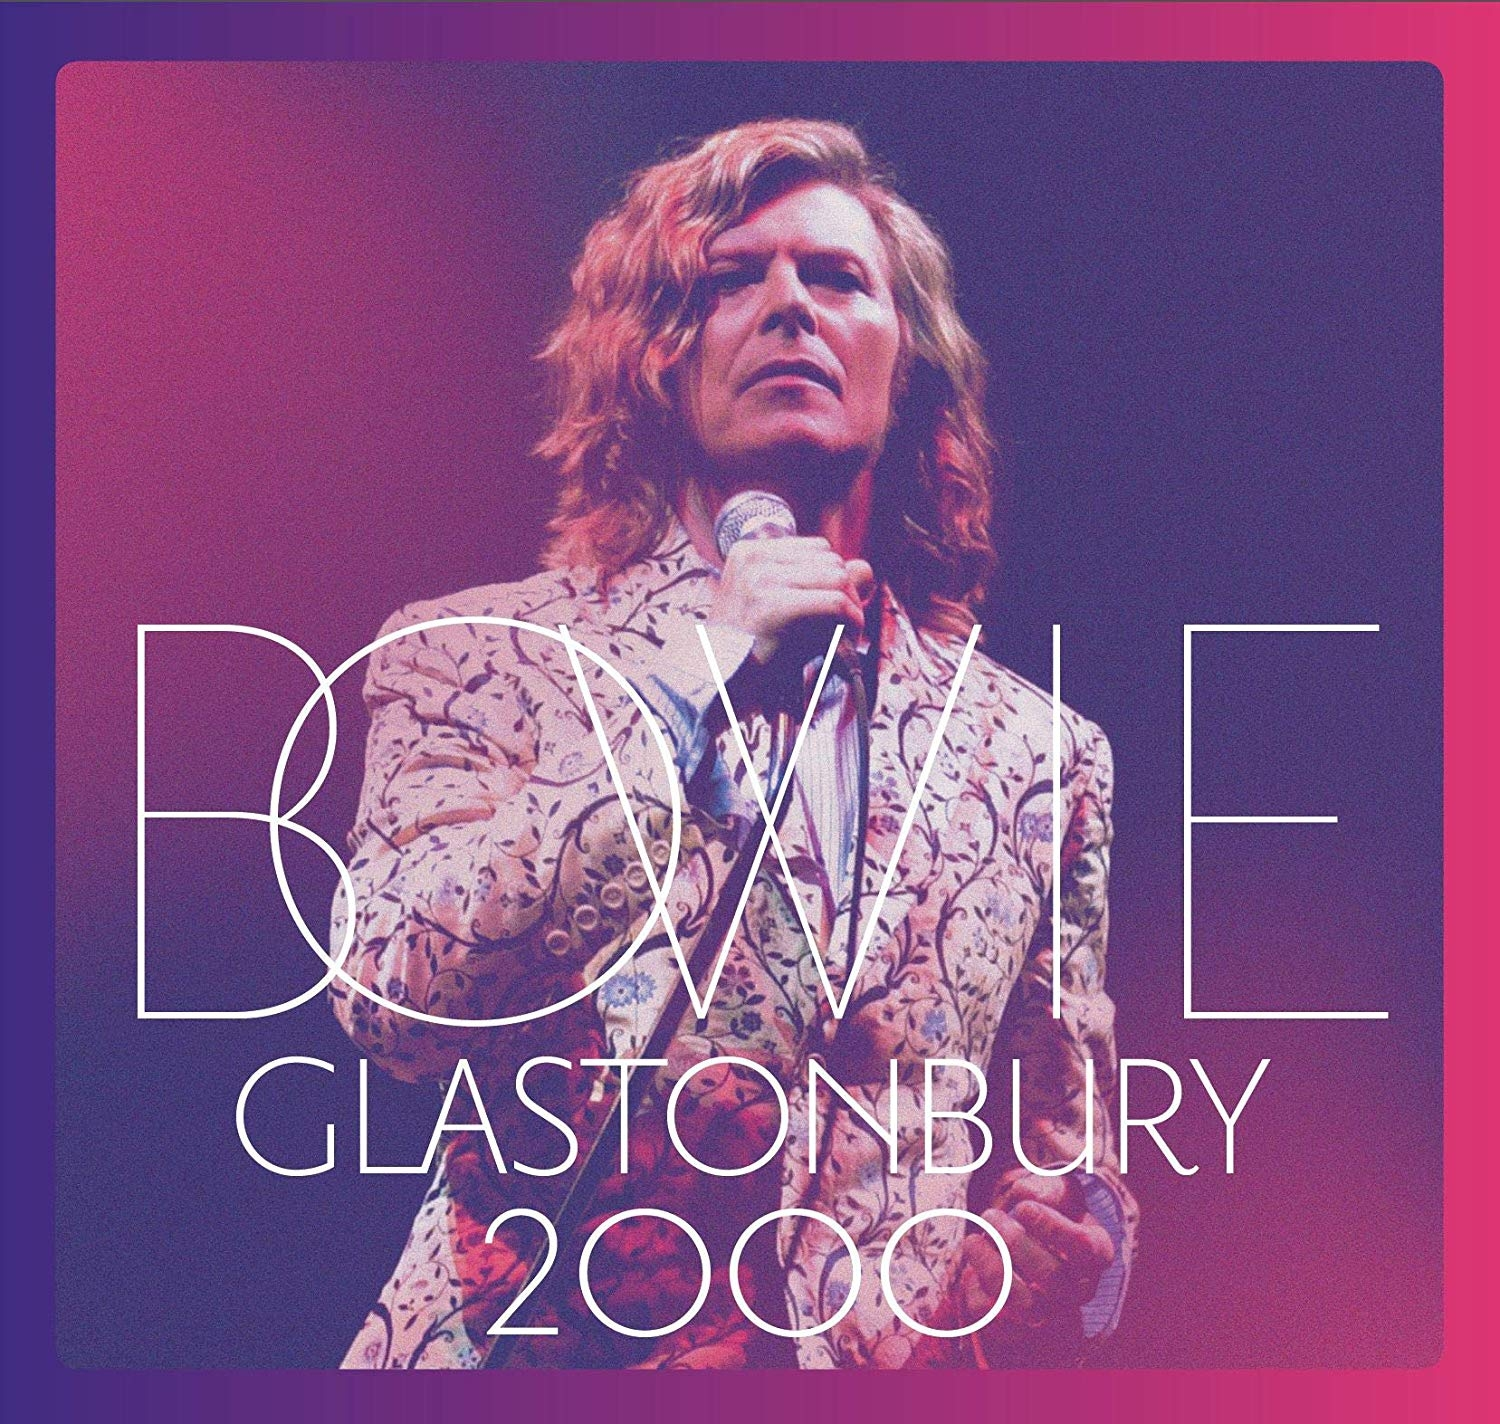 Glastonbury 2000 [2CD + 1DVD]